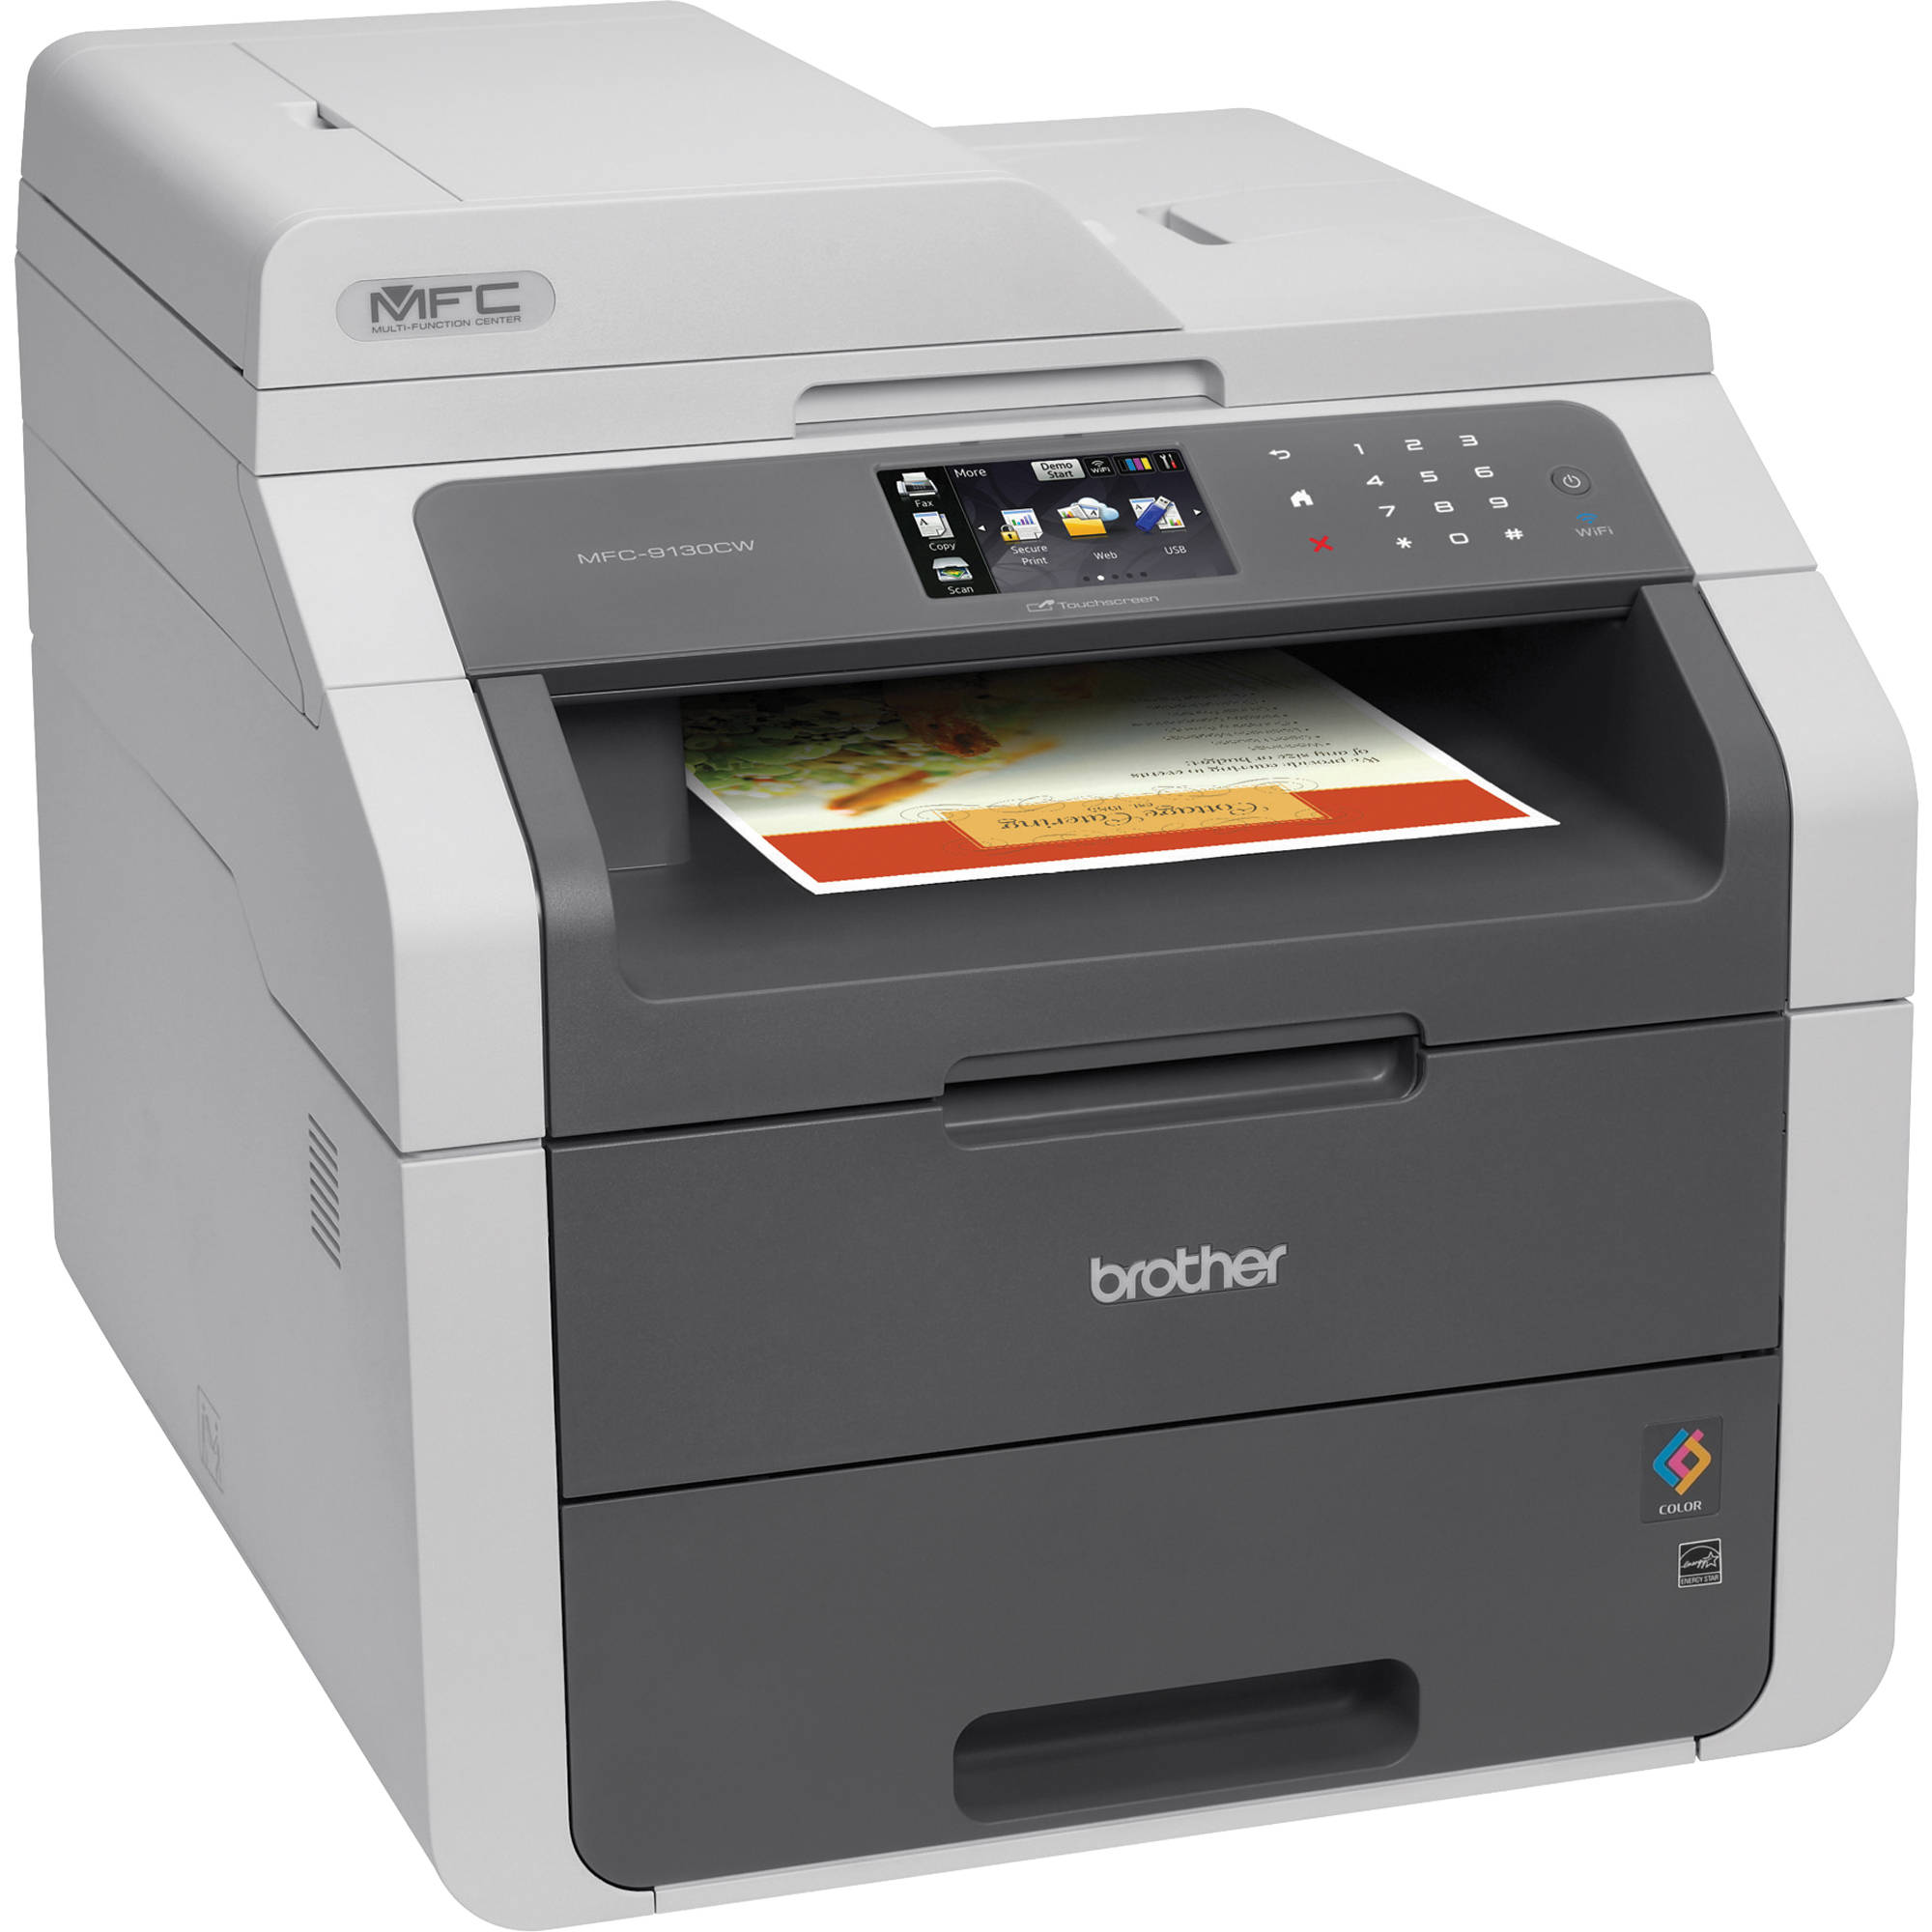 Brother Mfc 9130cw Wireless Color All In One Laser Mfc 9130cw Color Printer